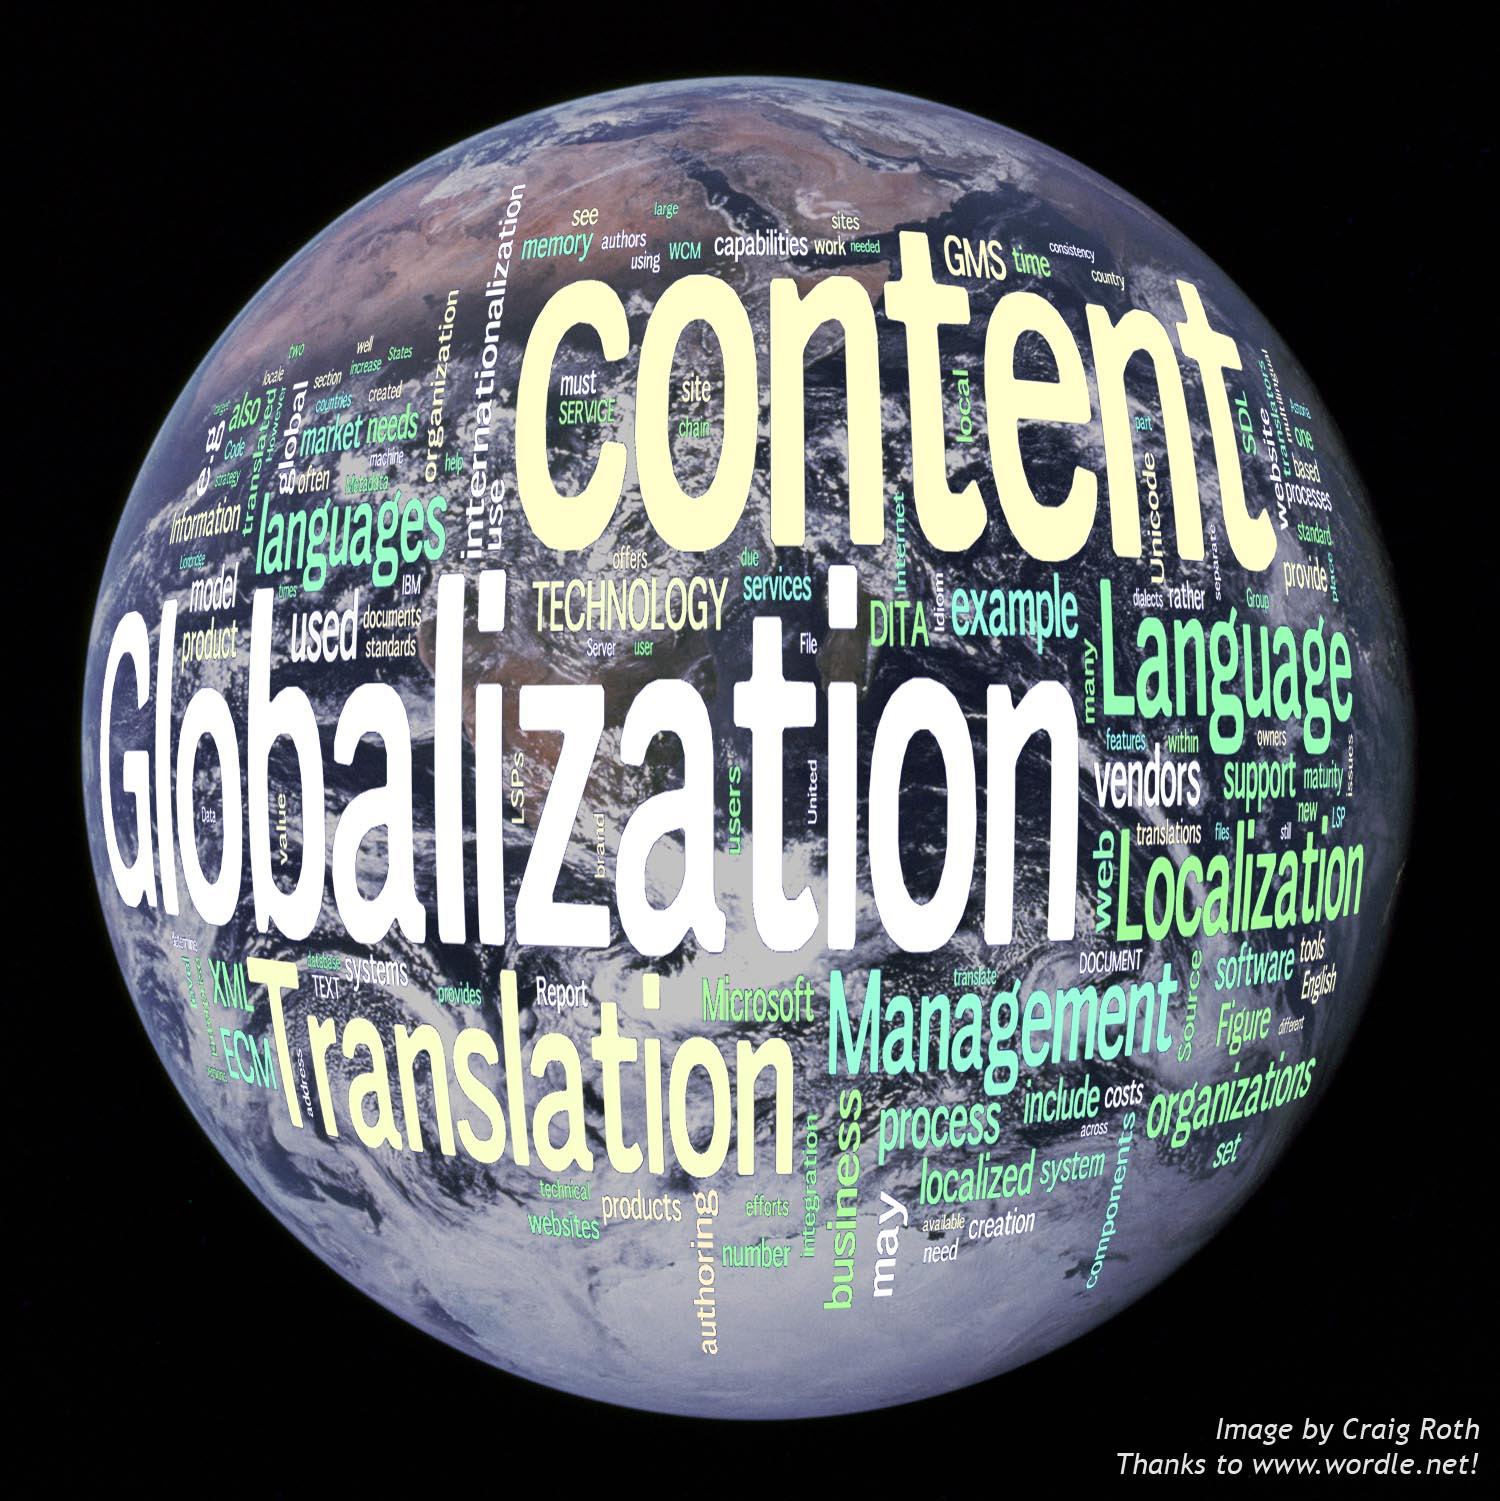 Globalization World Image by Craig Roth www.wordle.net